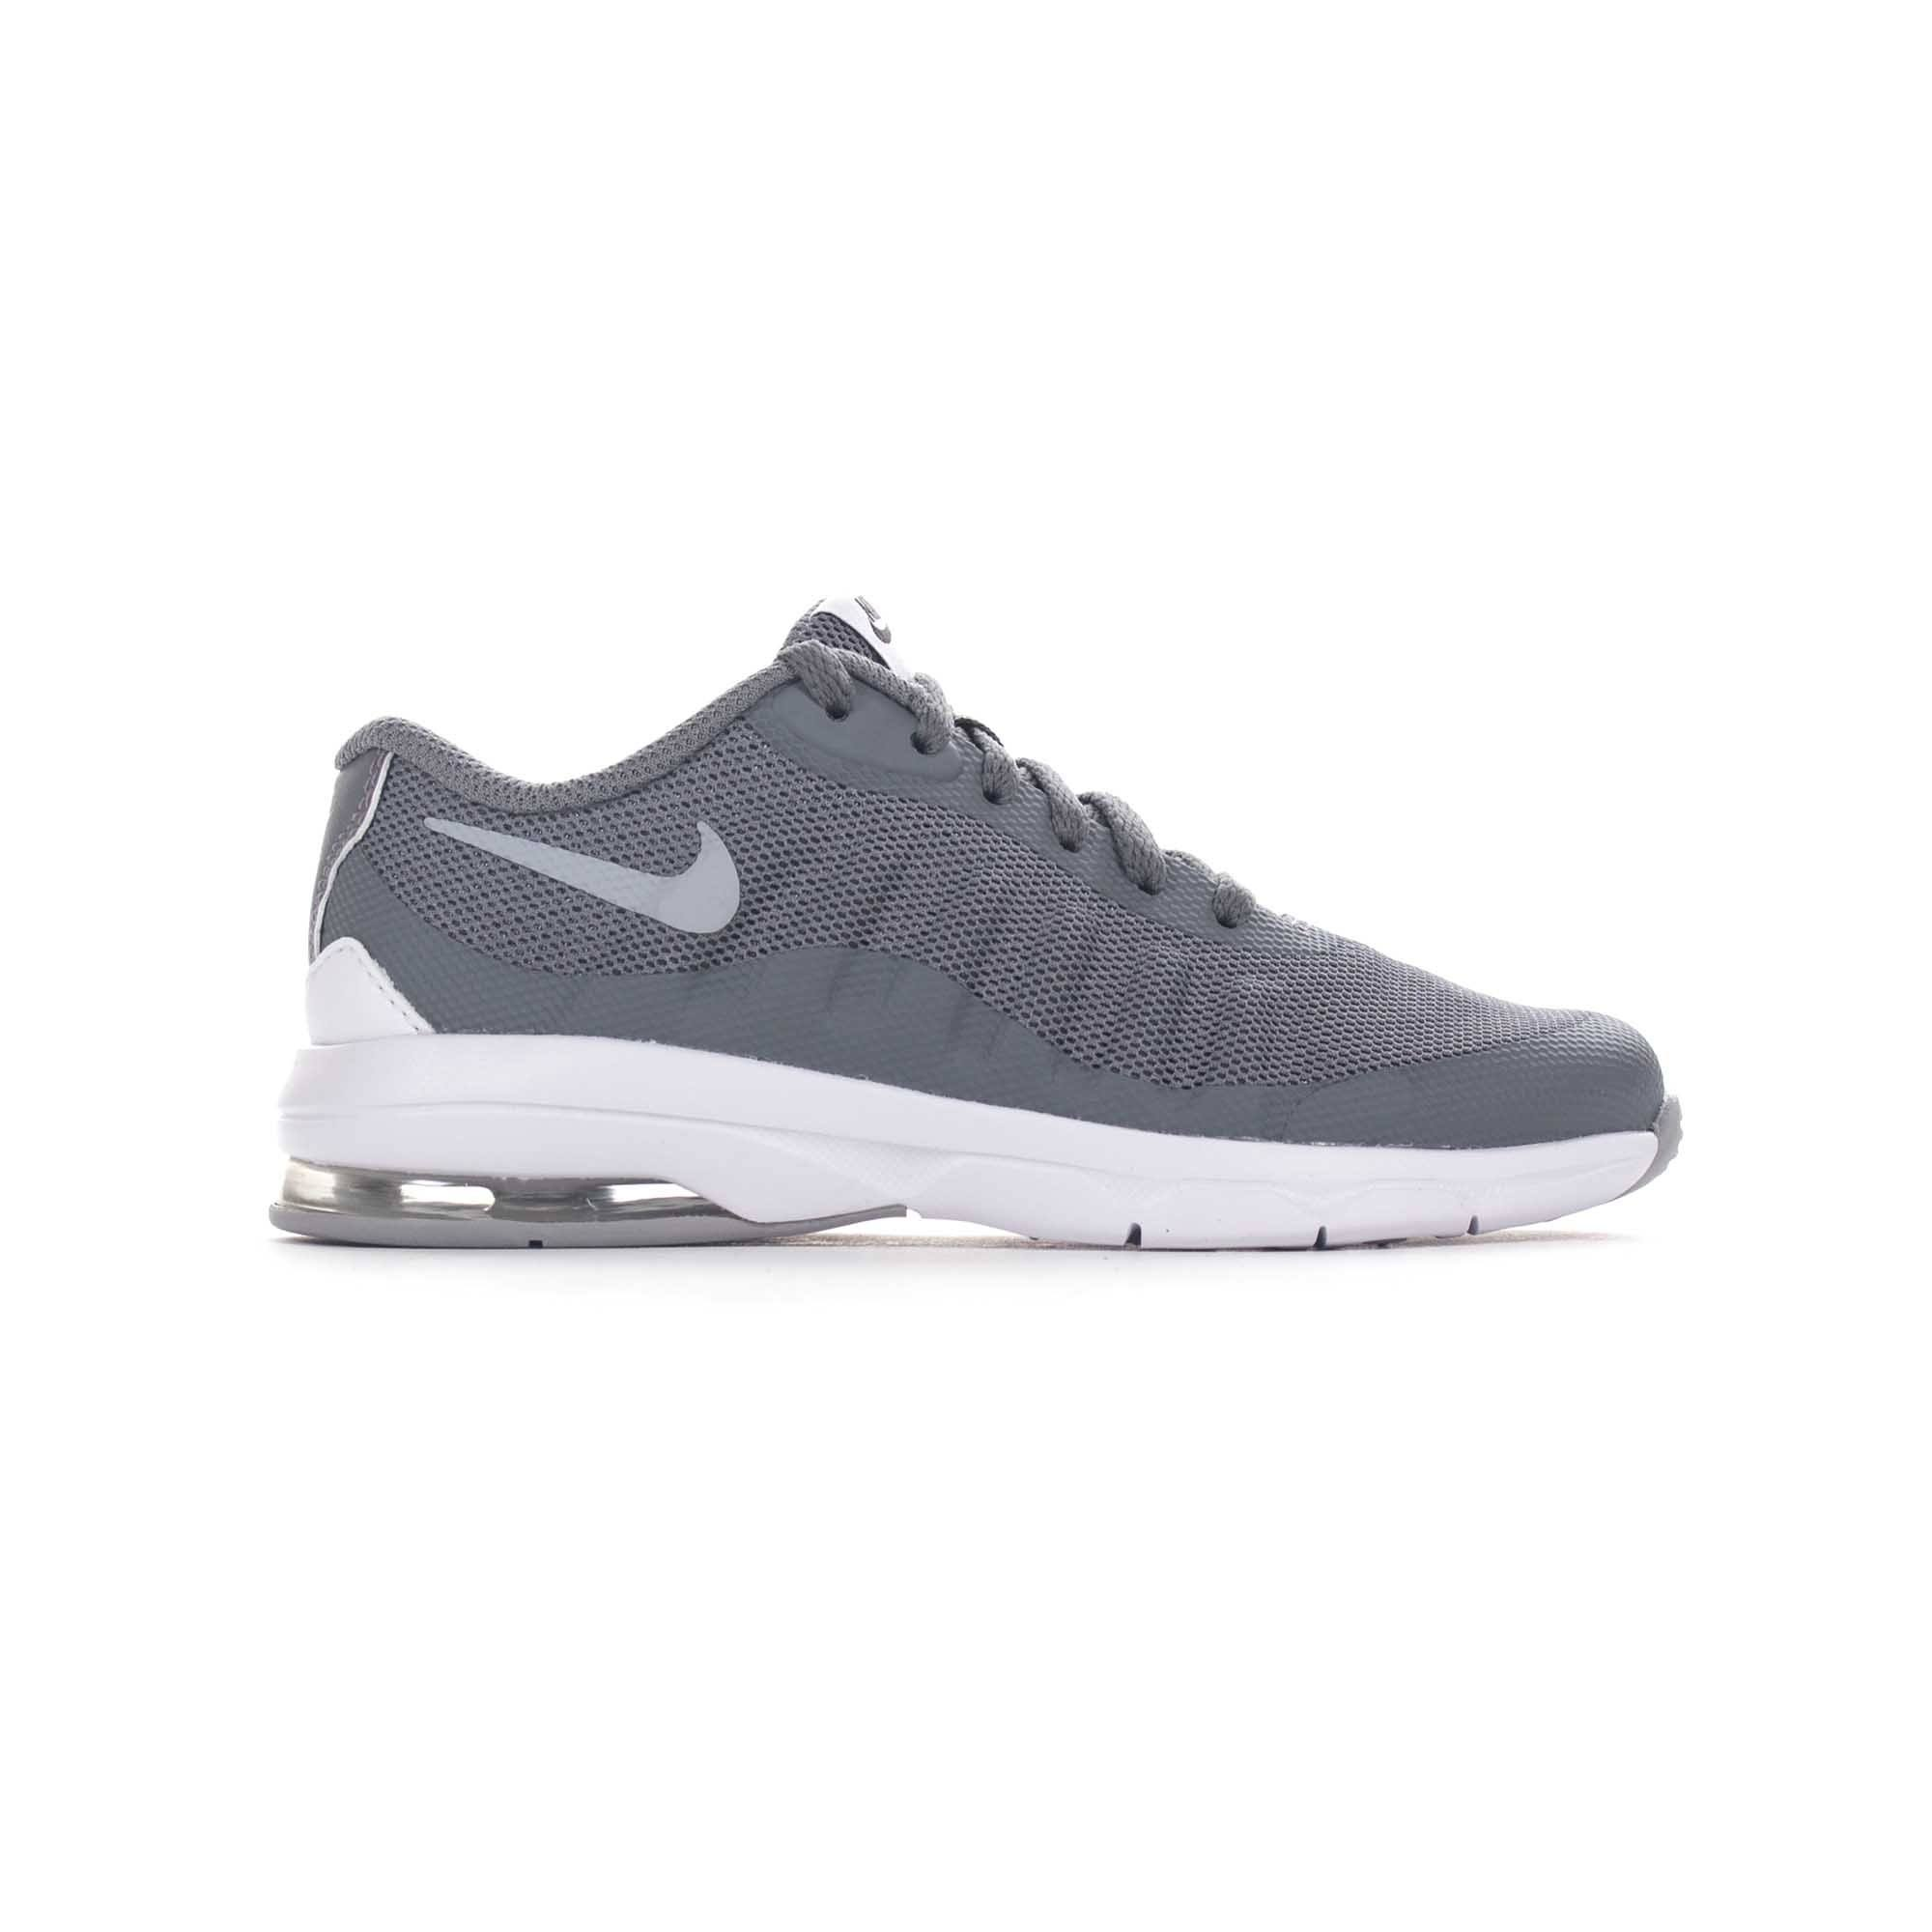 Nike Shoes (Trainers) Air Max Invigor PS